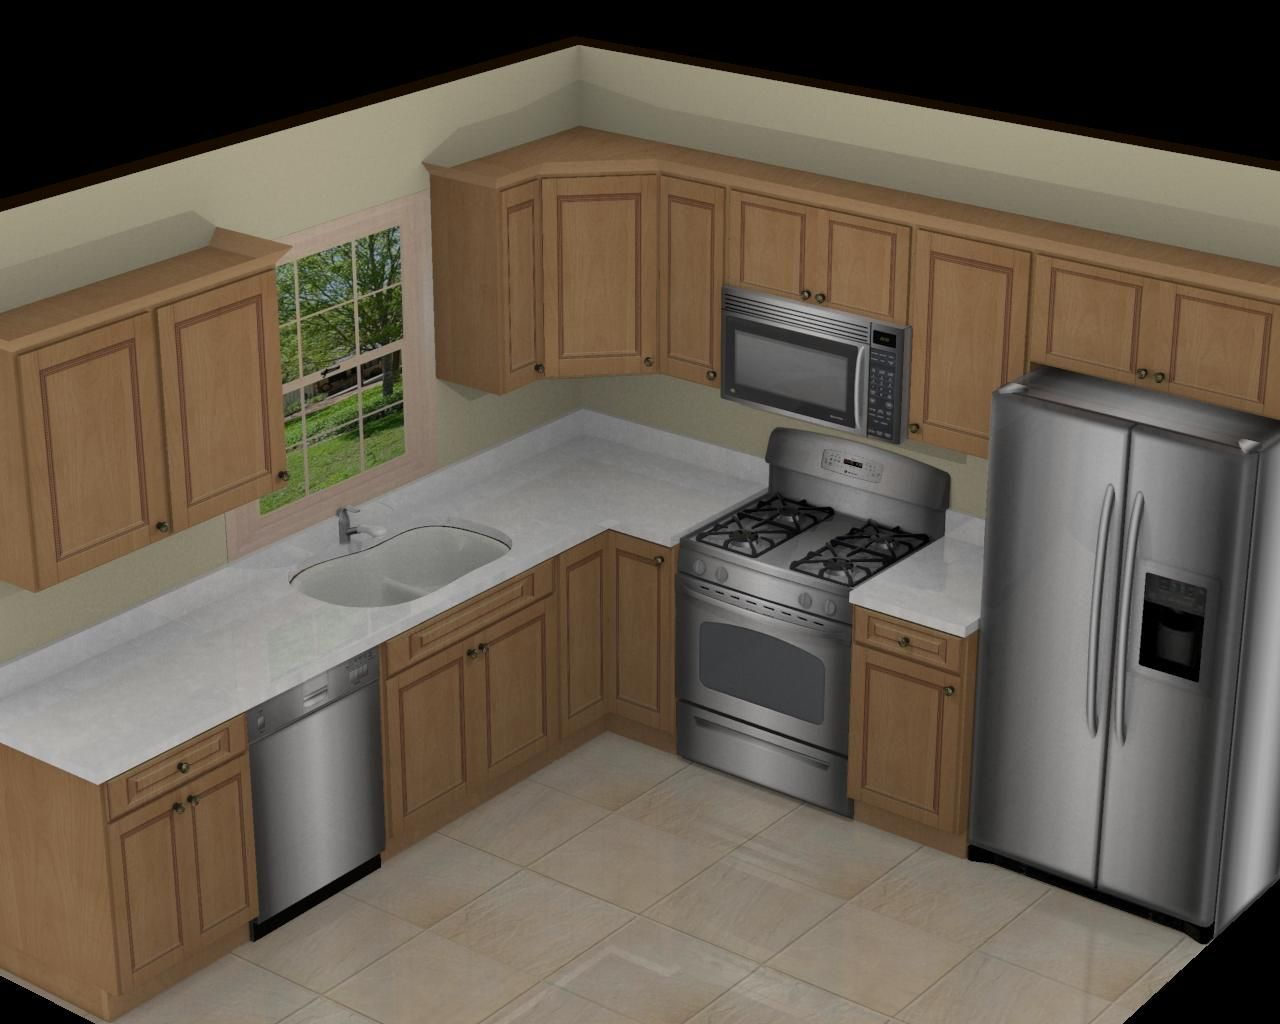 kitchen design plans kitchen cabinet layout ideas kitchen design ikea sales